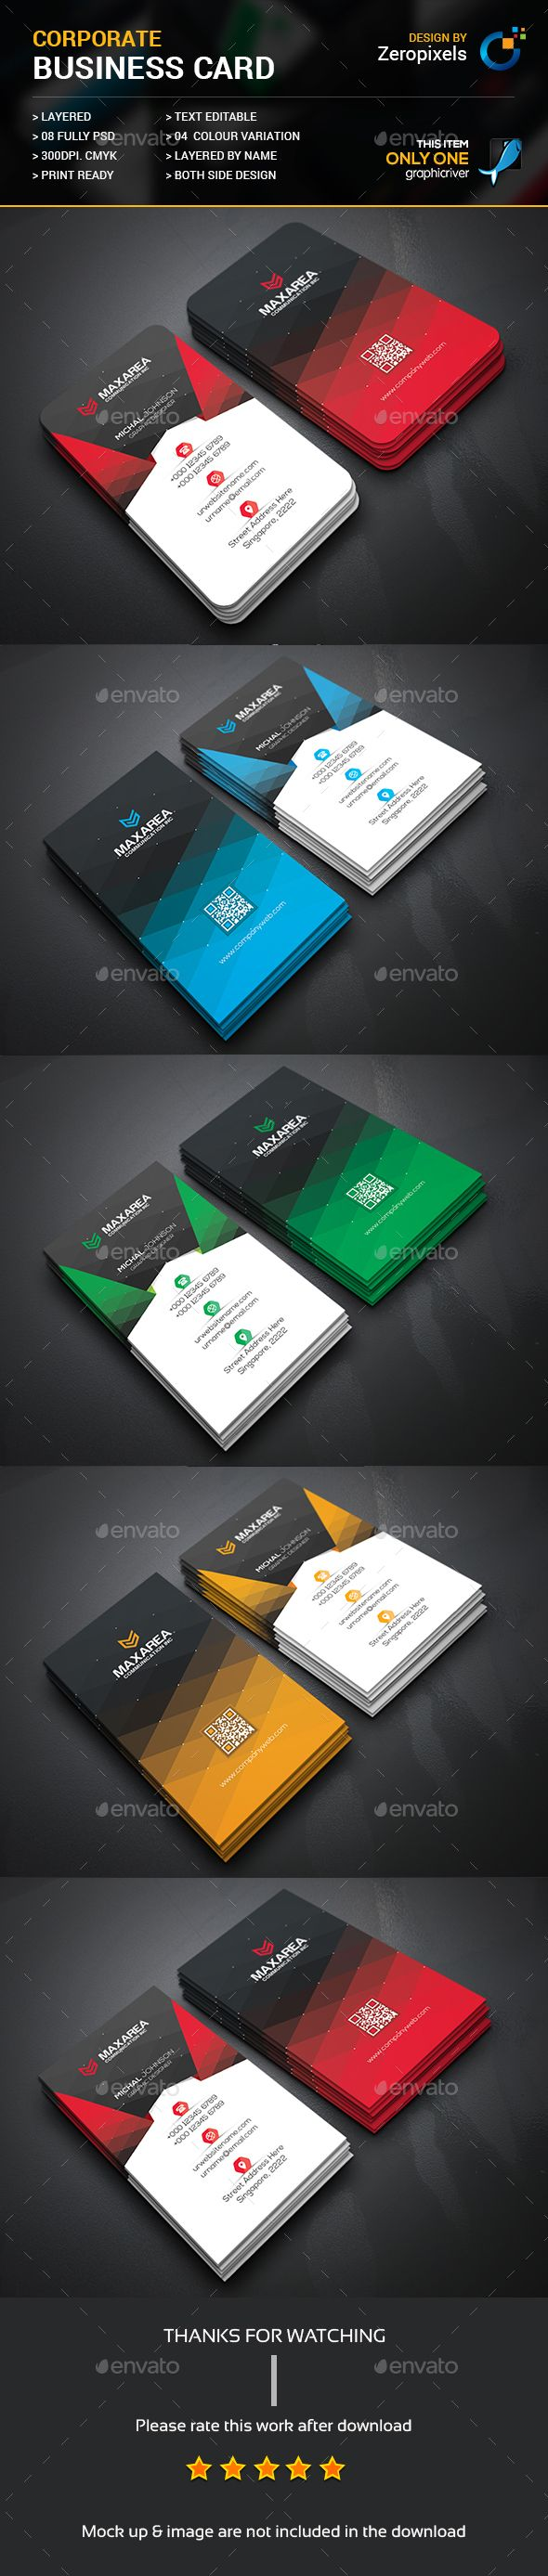 279 best business card images on pinterest business card